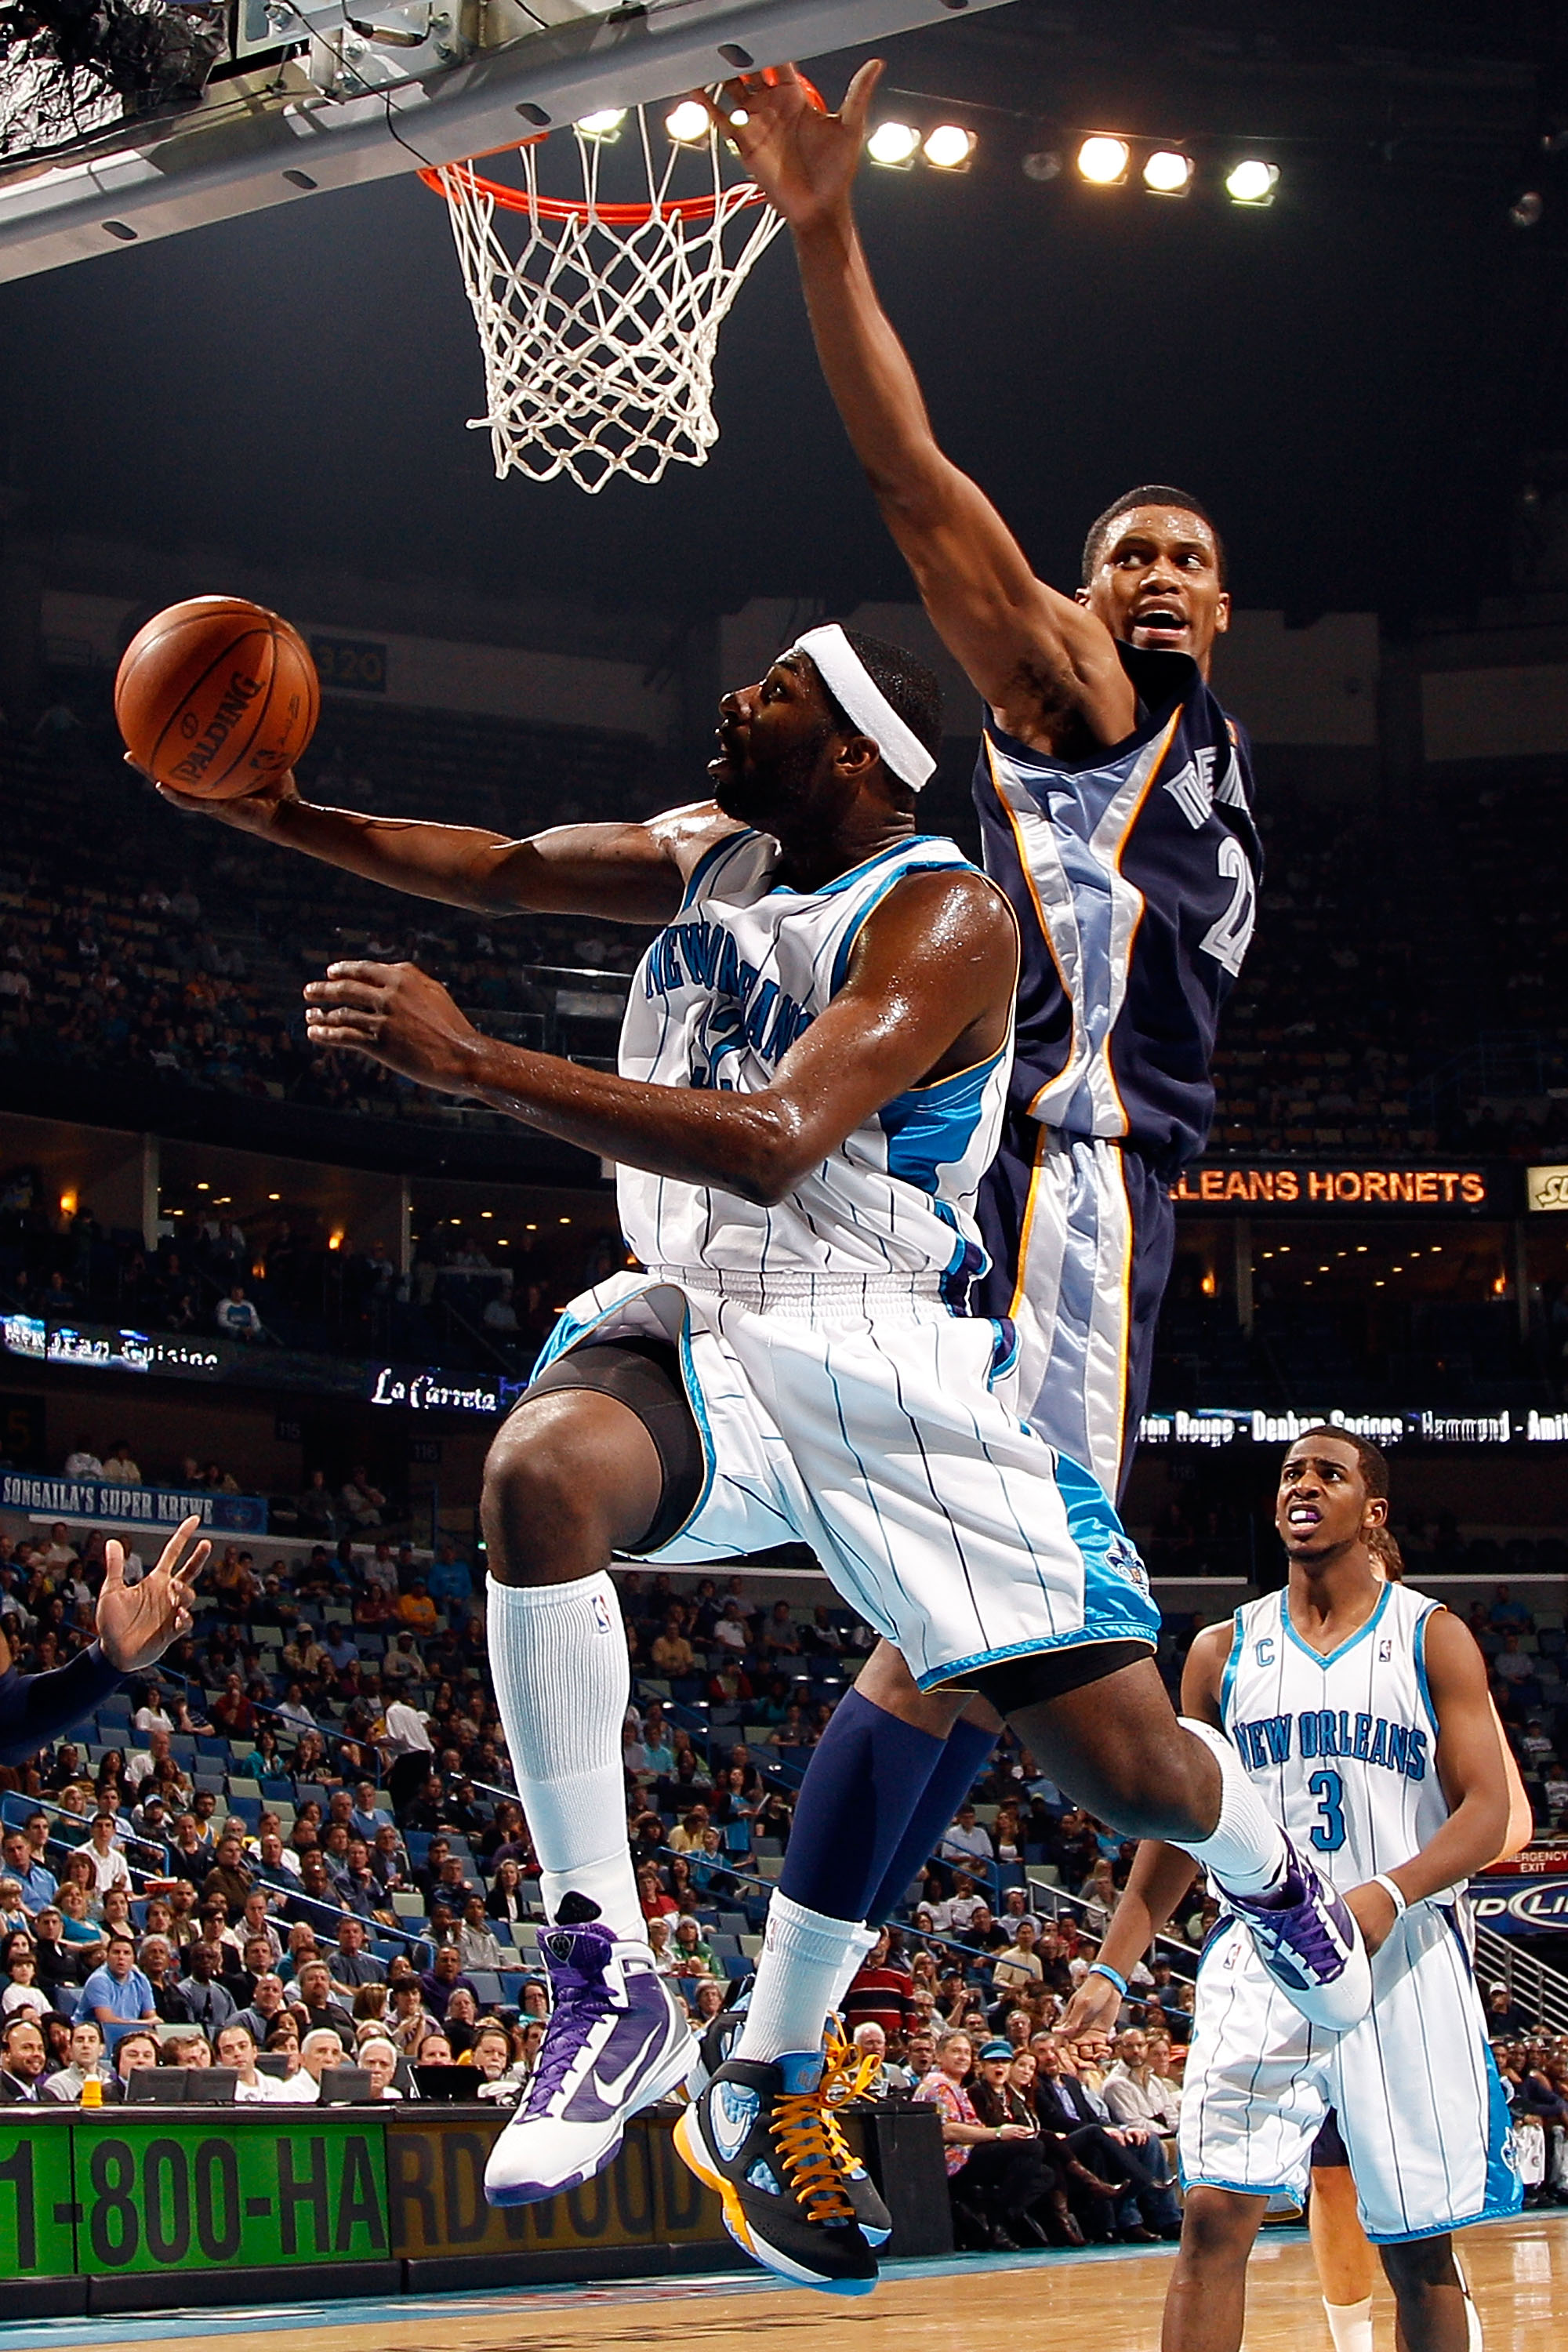 NEW ORLEANS - JANUARY 20:  Julian Wright #32 of the New Orleans Hornets goes up for a shot against Rudy Gay #22 of the Memphis Grizzlies at the New Orleans Arena on January 20, 2010 in New Orleans, Louisiana.  NOTE TO USER: User expressly acknowledges and